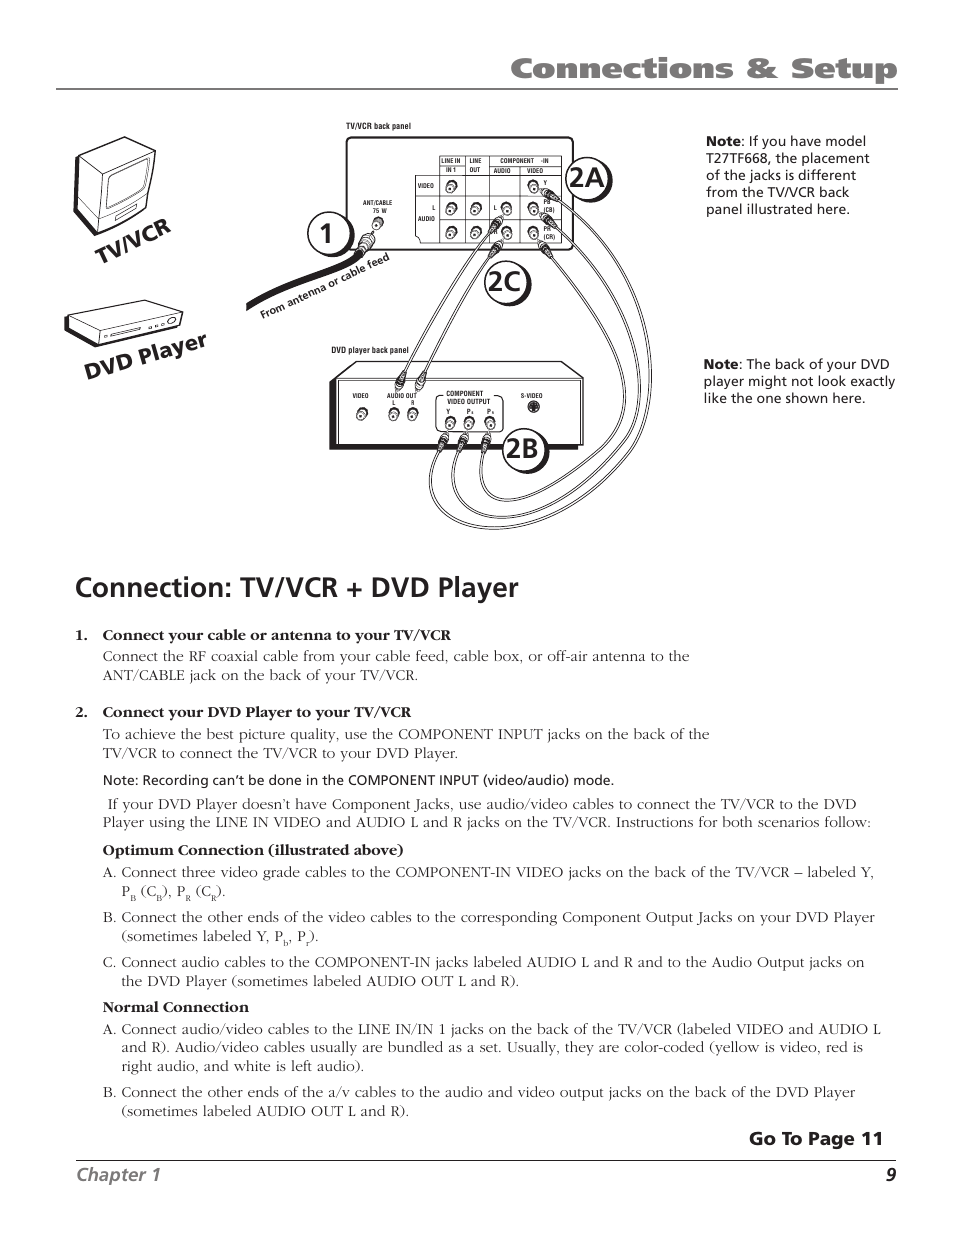 Connections Setup Connection Tv Vcr Dvd Player 2a 2b 2c Rca Hookup Video Diagrams Cable Box To Truflat T20tf668 User Manual Page 11 56